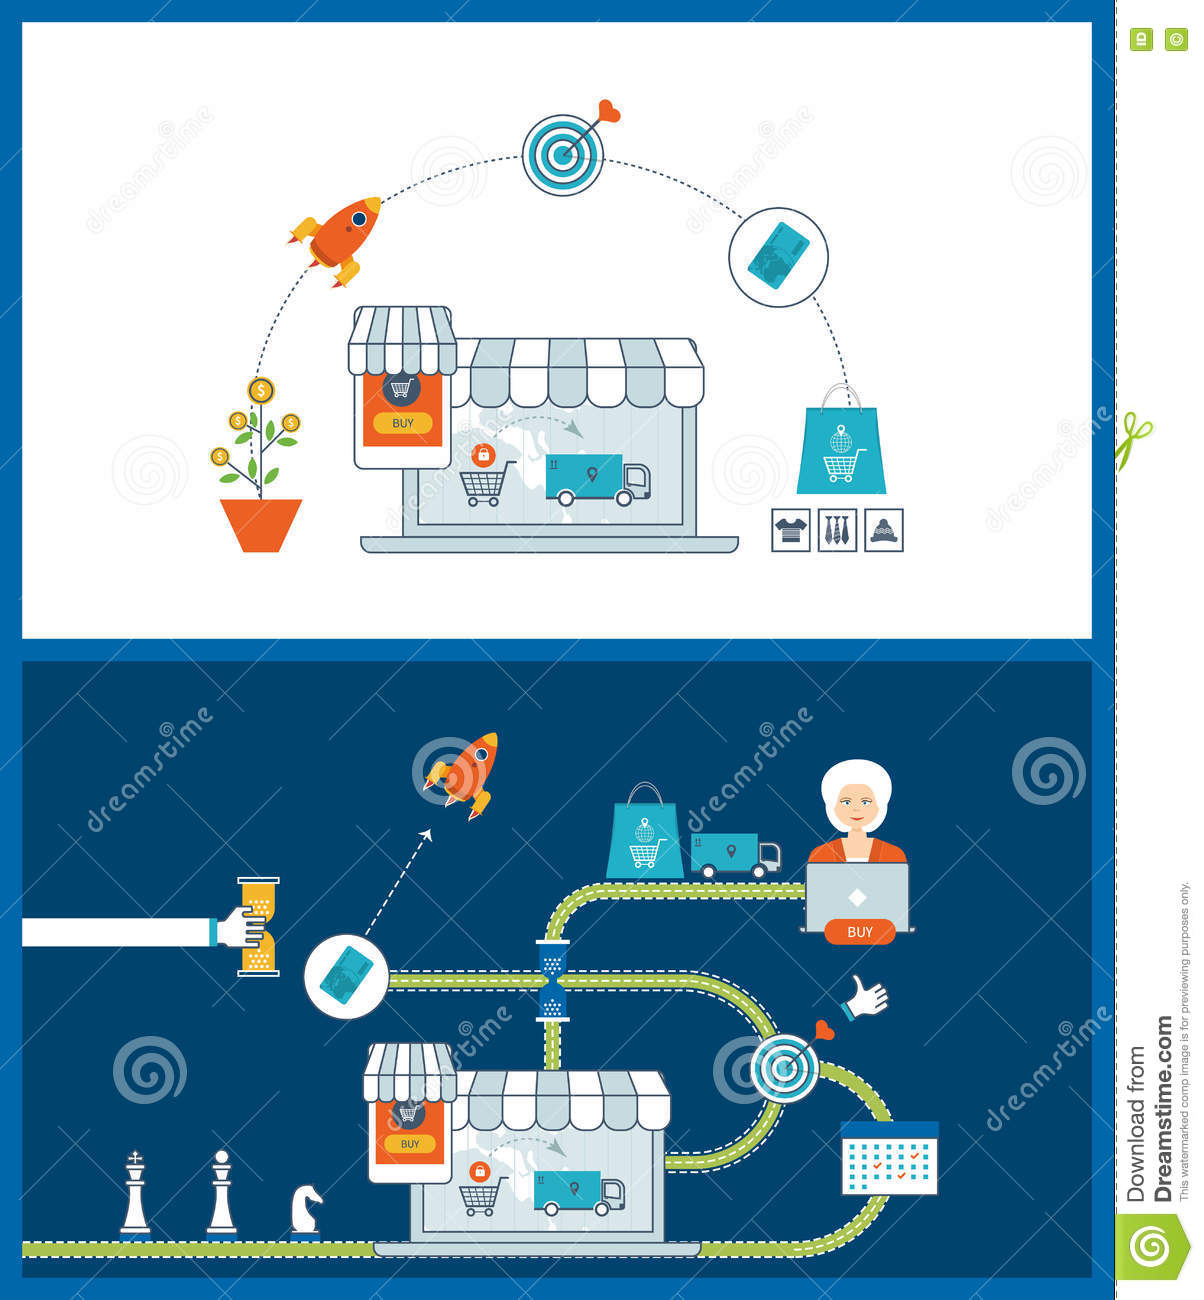 boman strategy clock mobile We have explained the successful strategy of tesco by linking it with bowman's strategy clock which helps us to know the strategy followed by tesco over the years our evaluation on tesco includes the statistic that proves why tesco is the best supermarket in the uk.